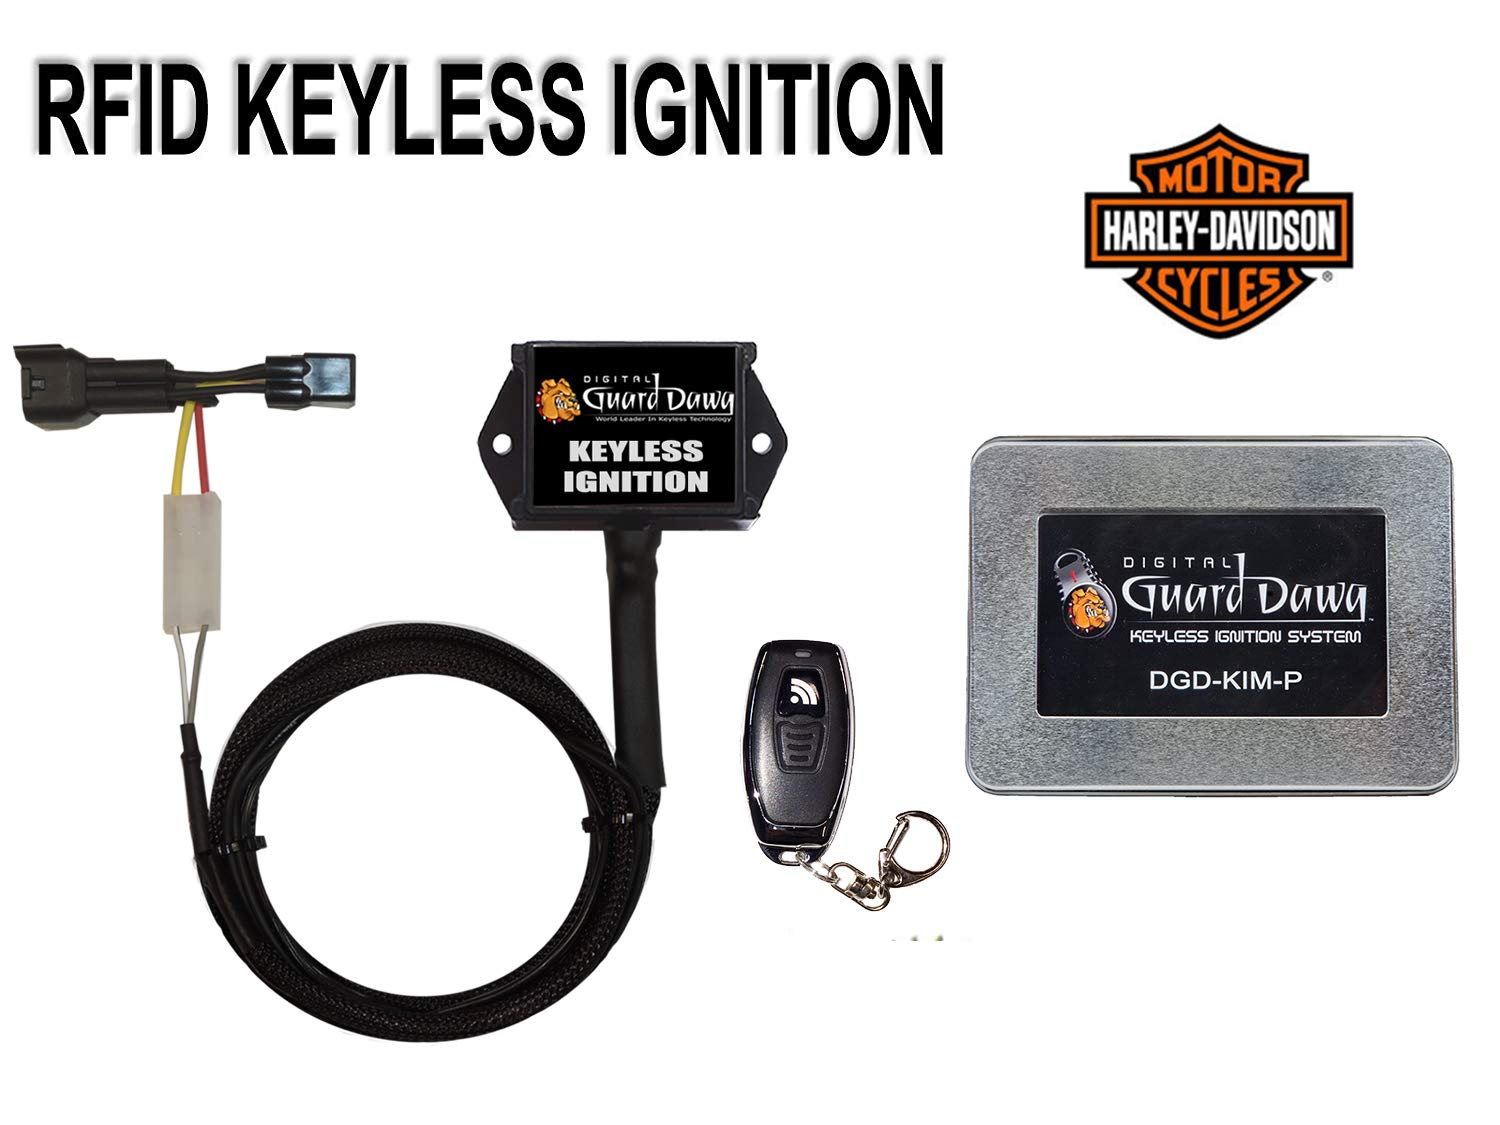 Keyless Ignition for Harley Davidson Motorcycle-ALL PRE 2012 Models by Digital Guard Dawg (Image #1)